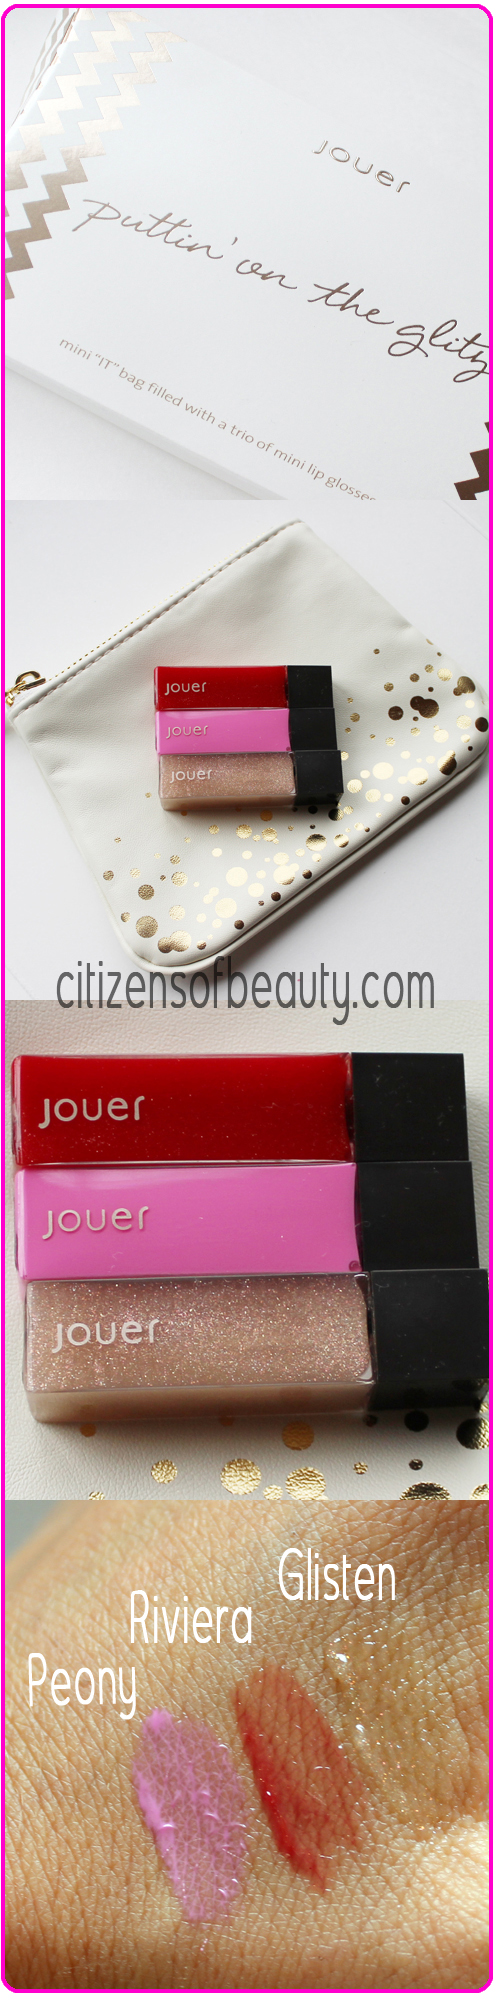 Jouer Cosmetics Holiday 2013 copy Jouer Cosmetics Holiday 2013!